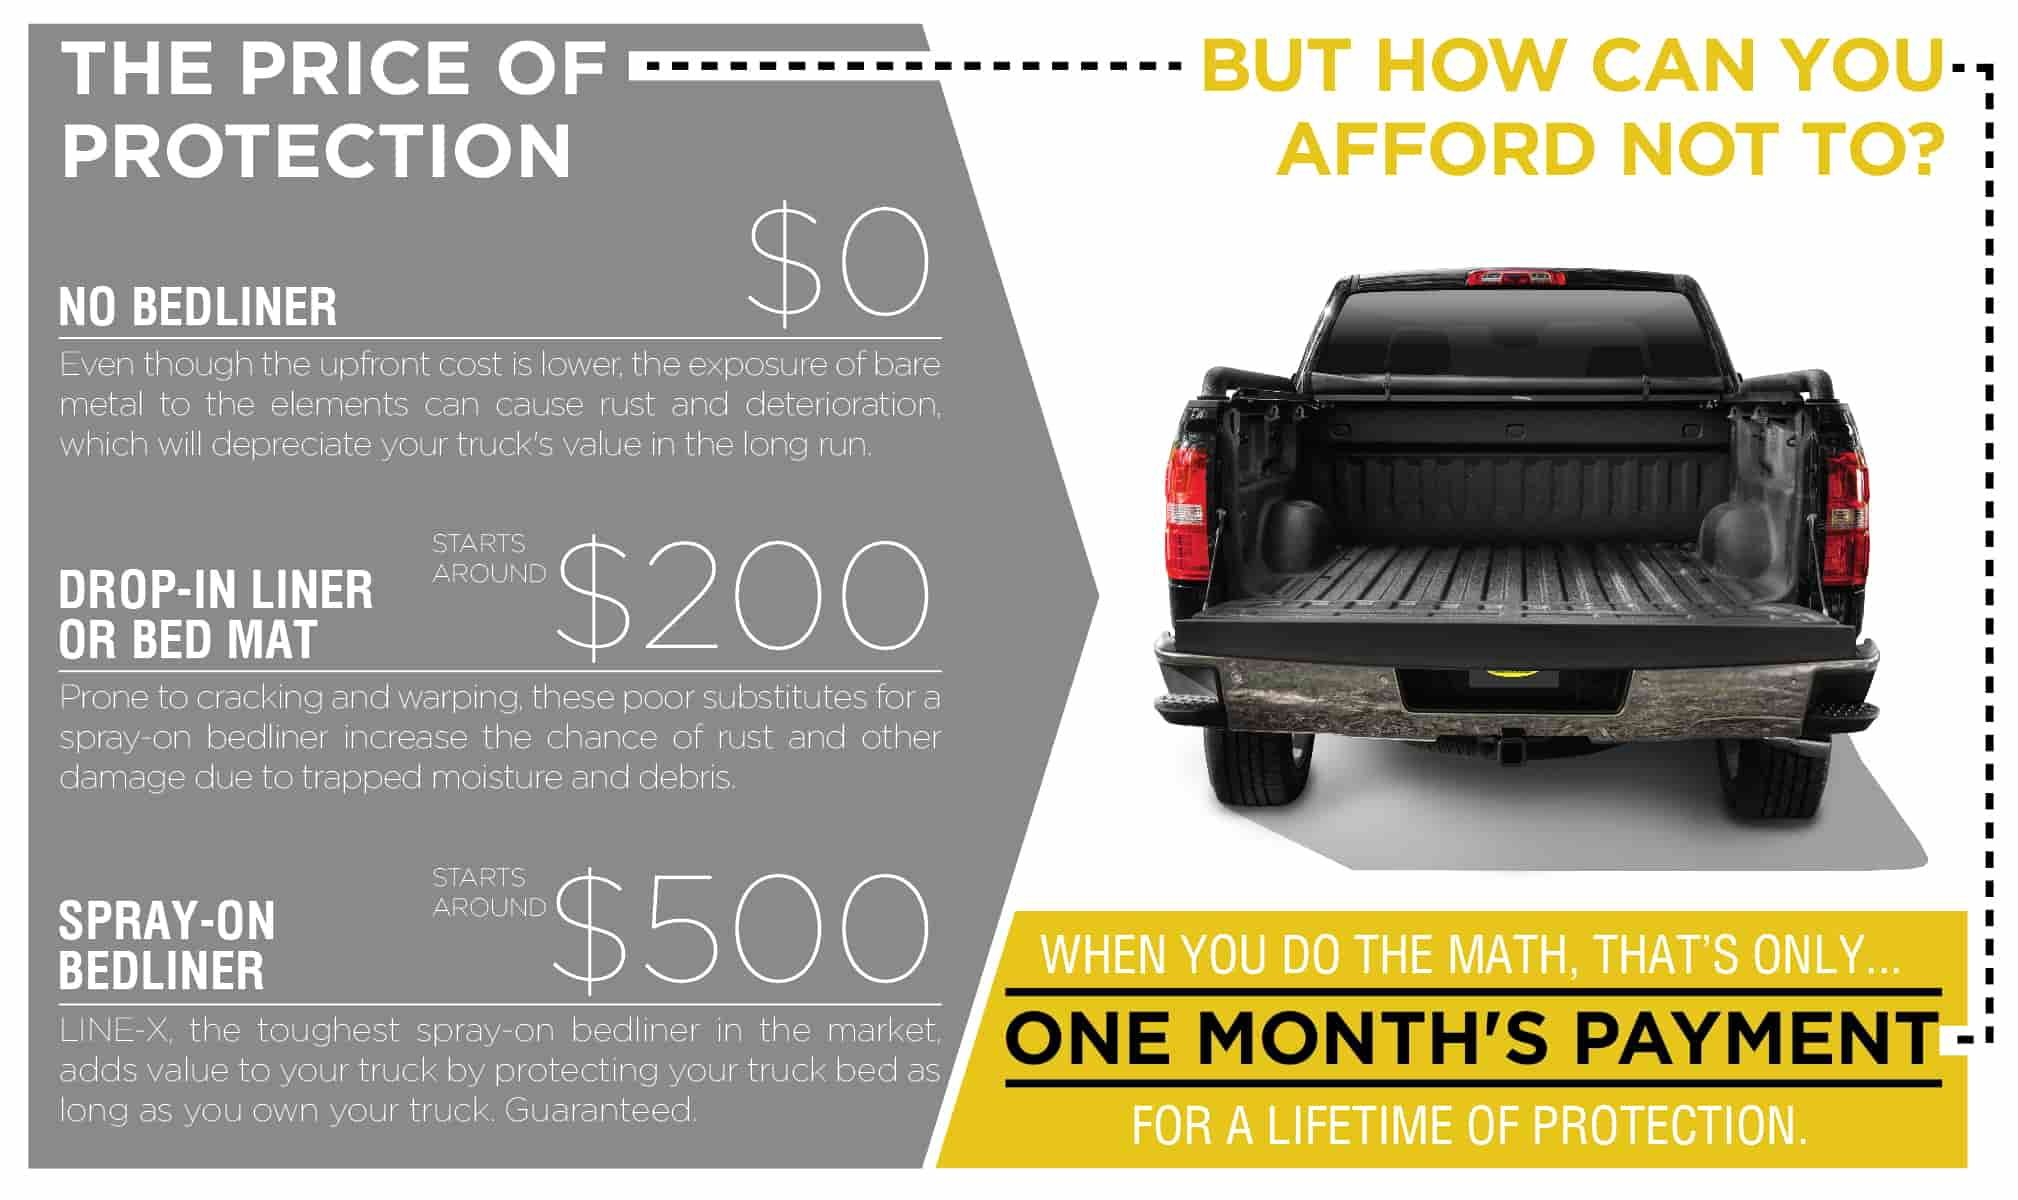 Line X Cost >> ADDING VALUE AND VIRTUAL INDESTRUCTIBILITY TO YOUR TRUCK ...